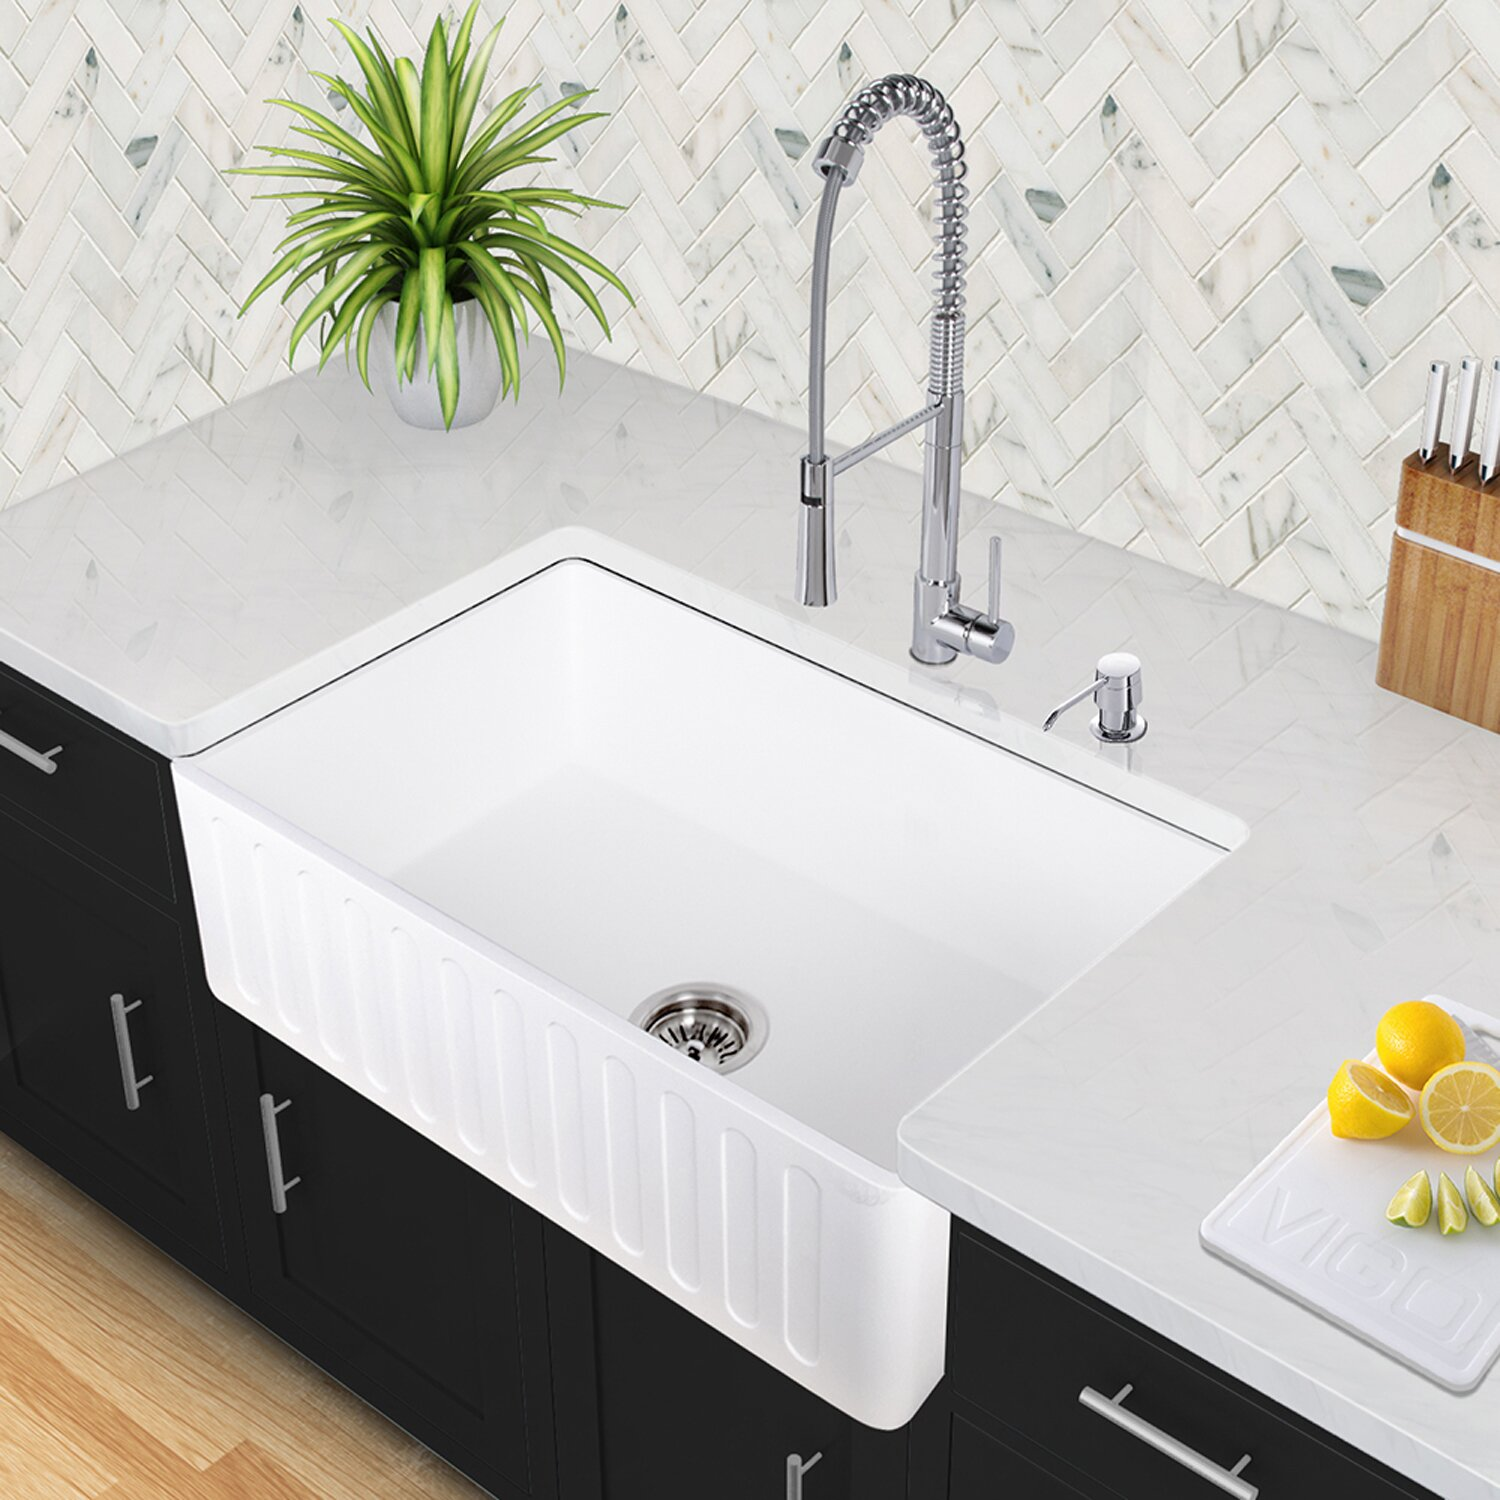 36 Inch Farm Sink : Vigo 36 inch Farmhouse Apron Single Bowl Matte Stone Kitchen Sink ...